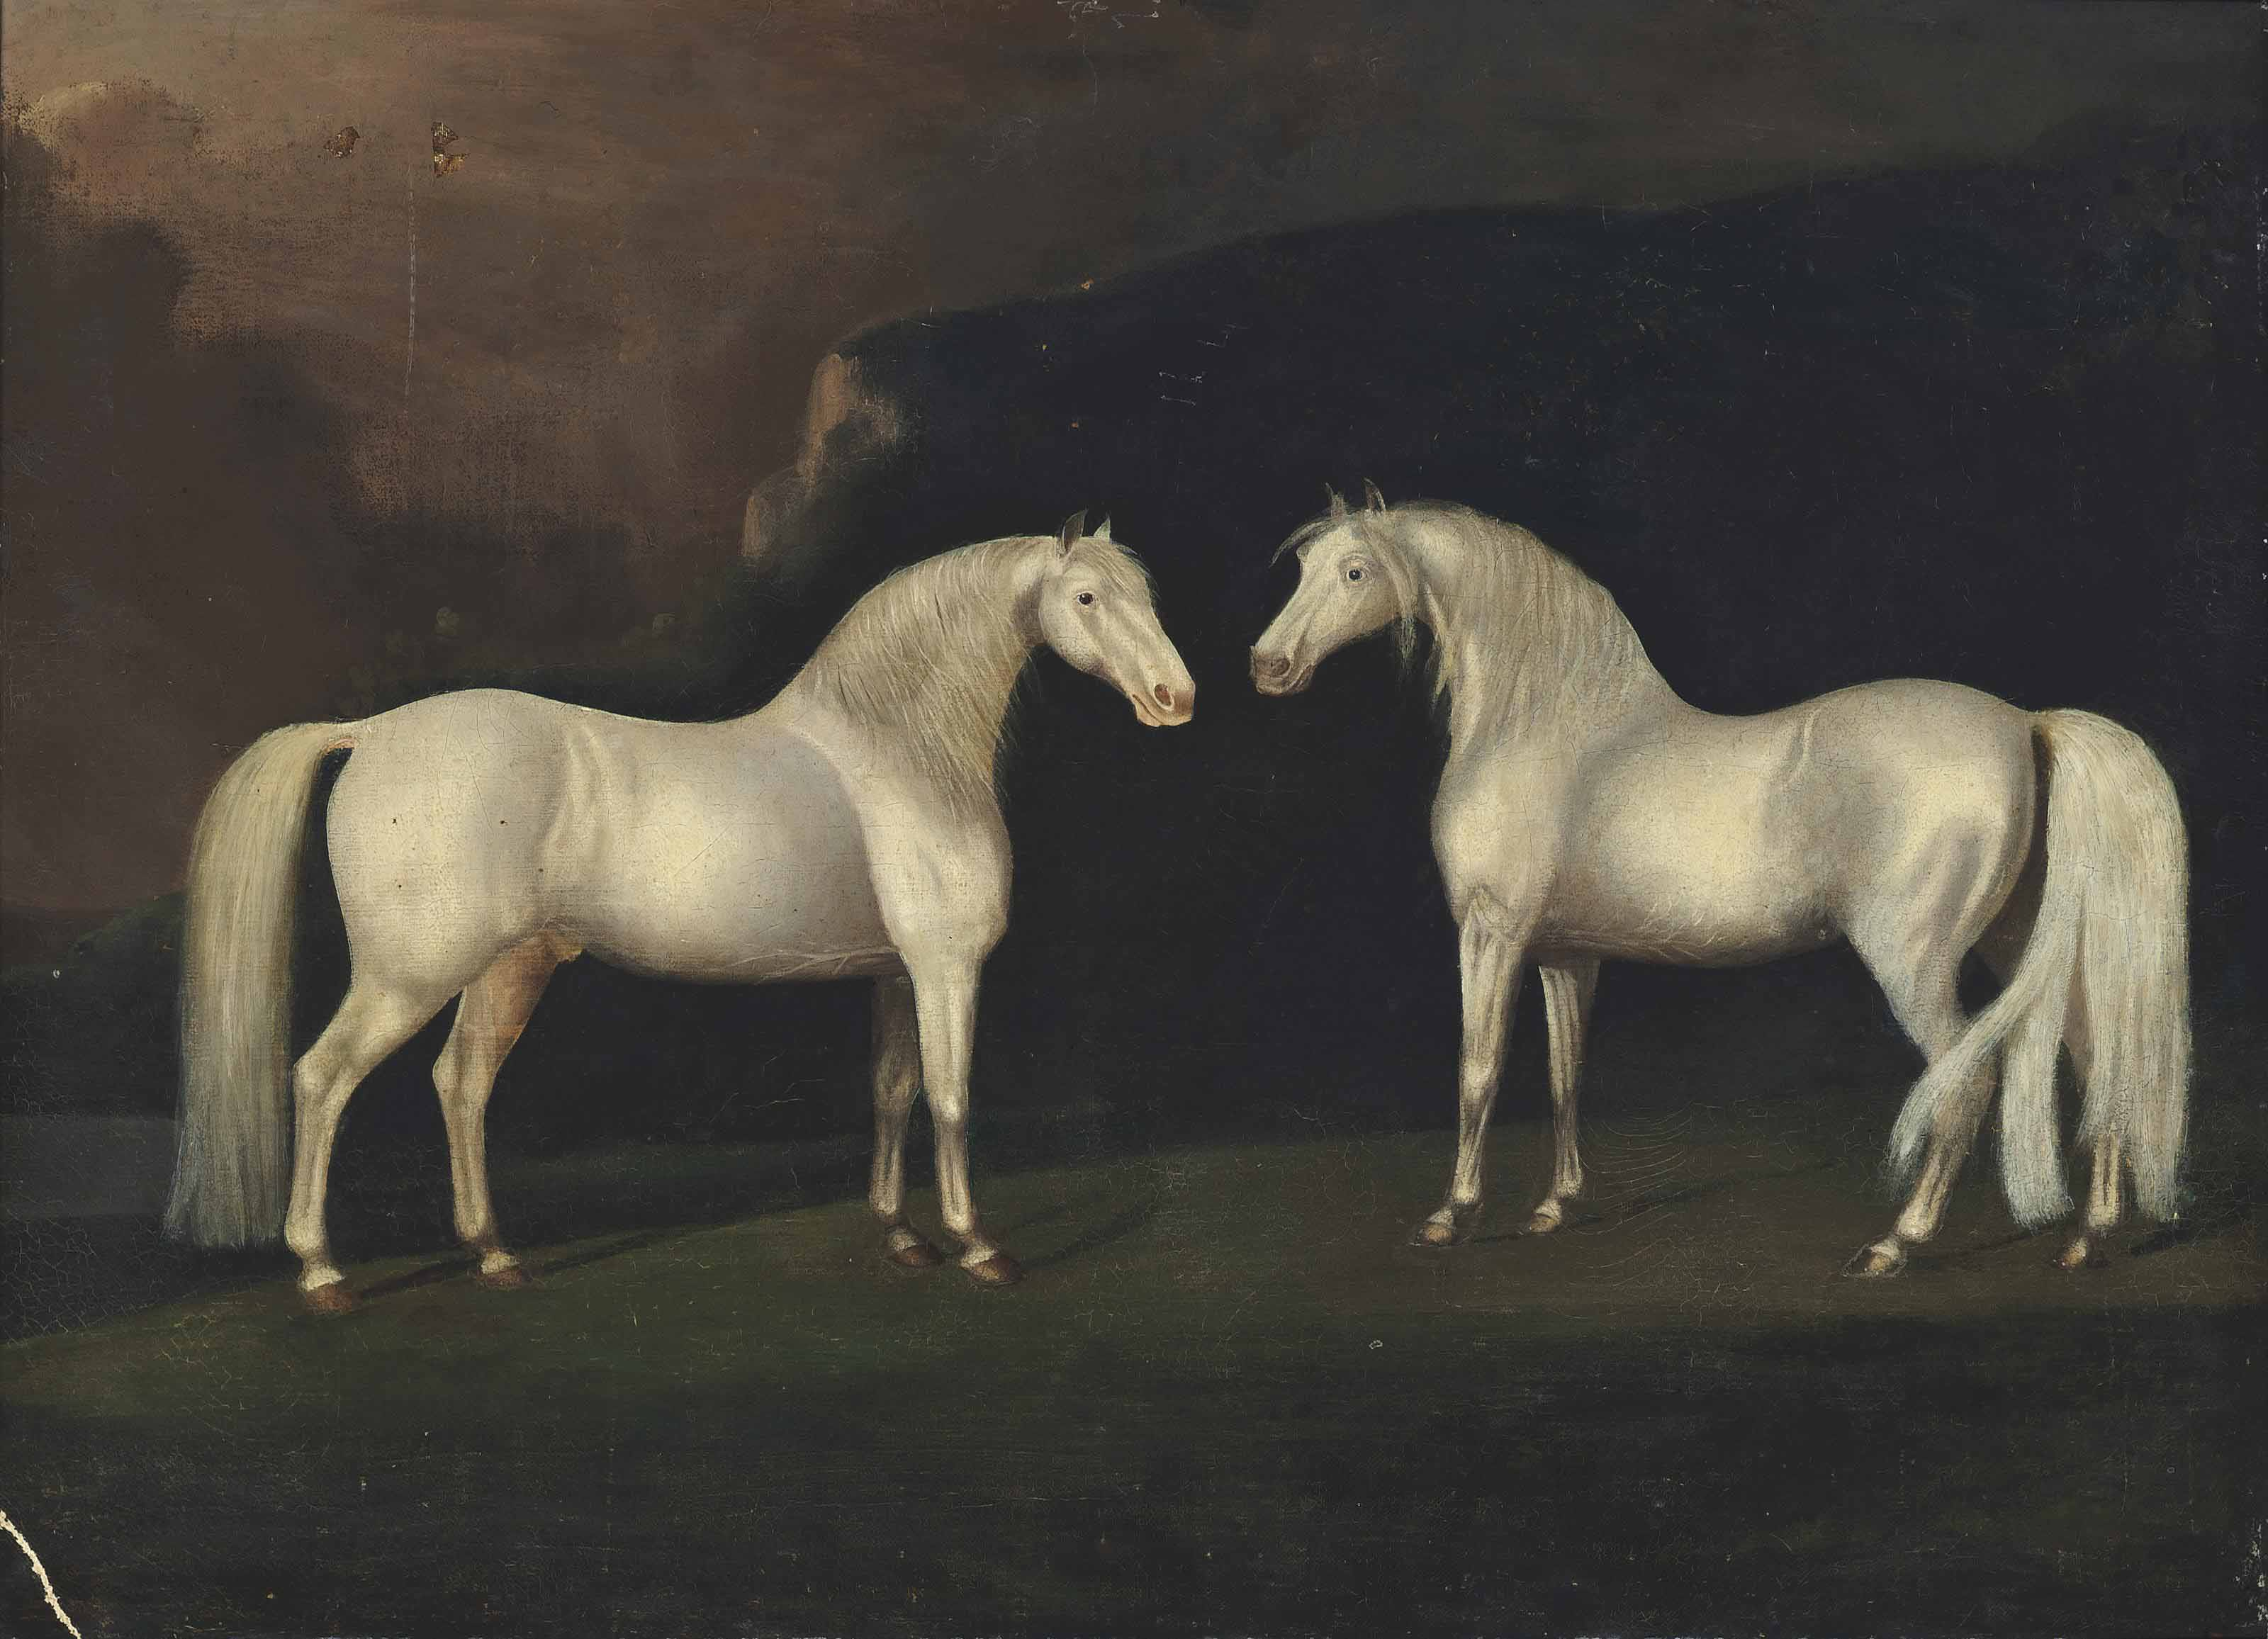 Grey stallions in a landscape